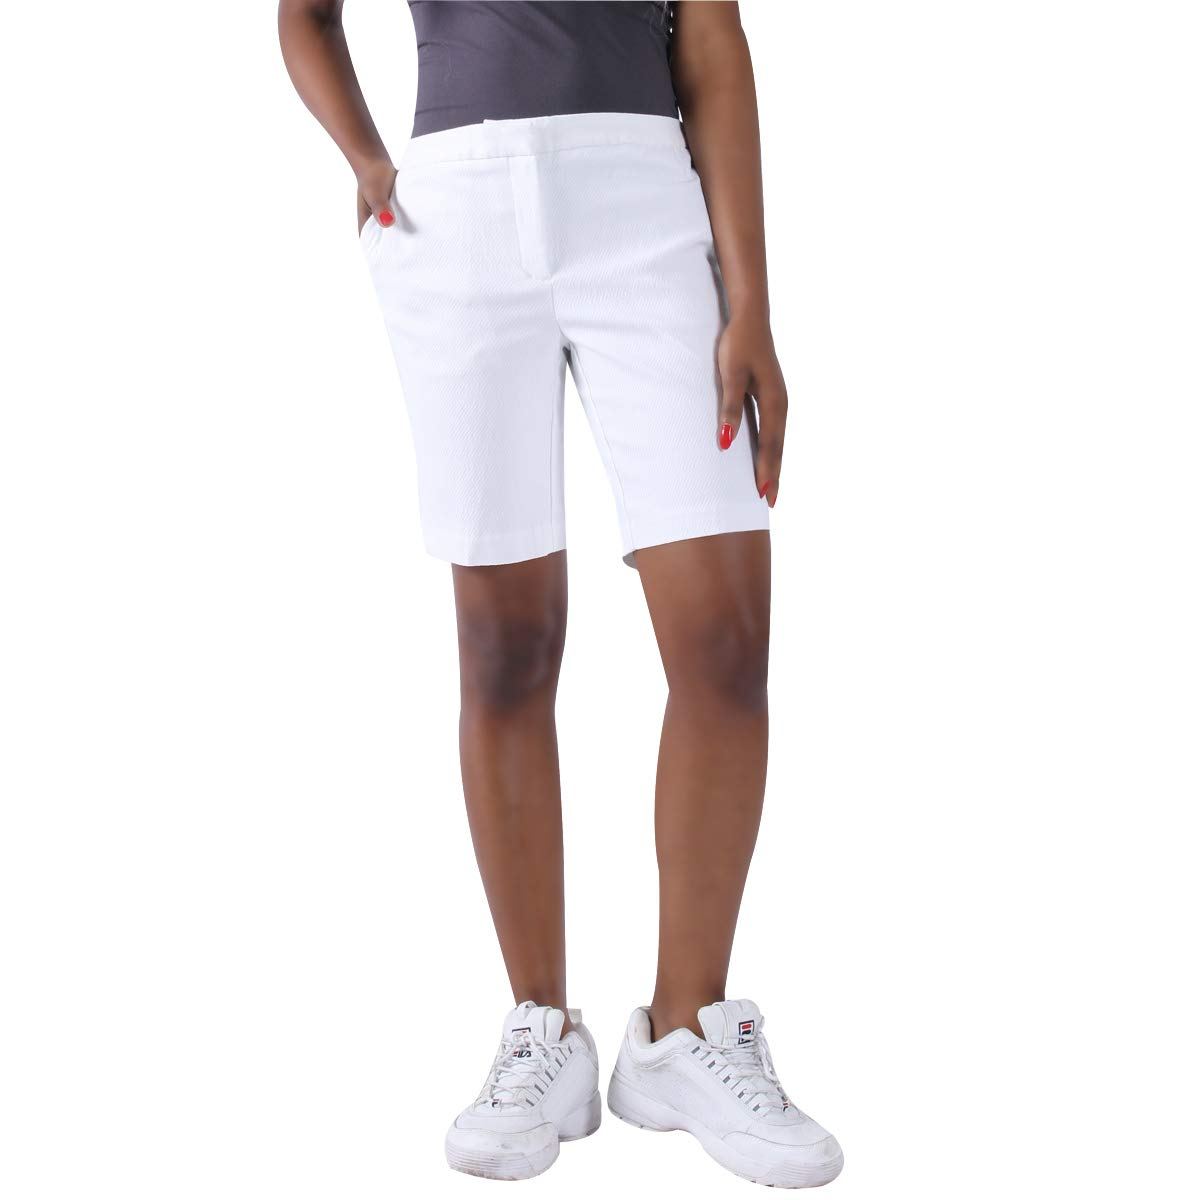 KELLY KLARK White Walking Shorts, Ladies' Elegant Modern Dress Shorts Bermuda, Size 14 by KELLY KLARK